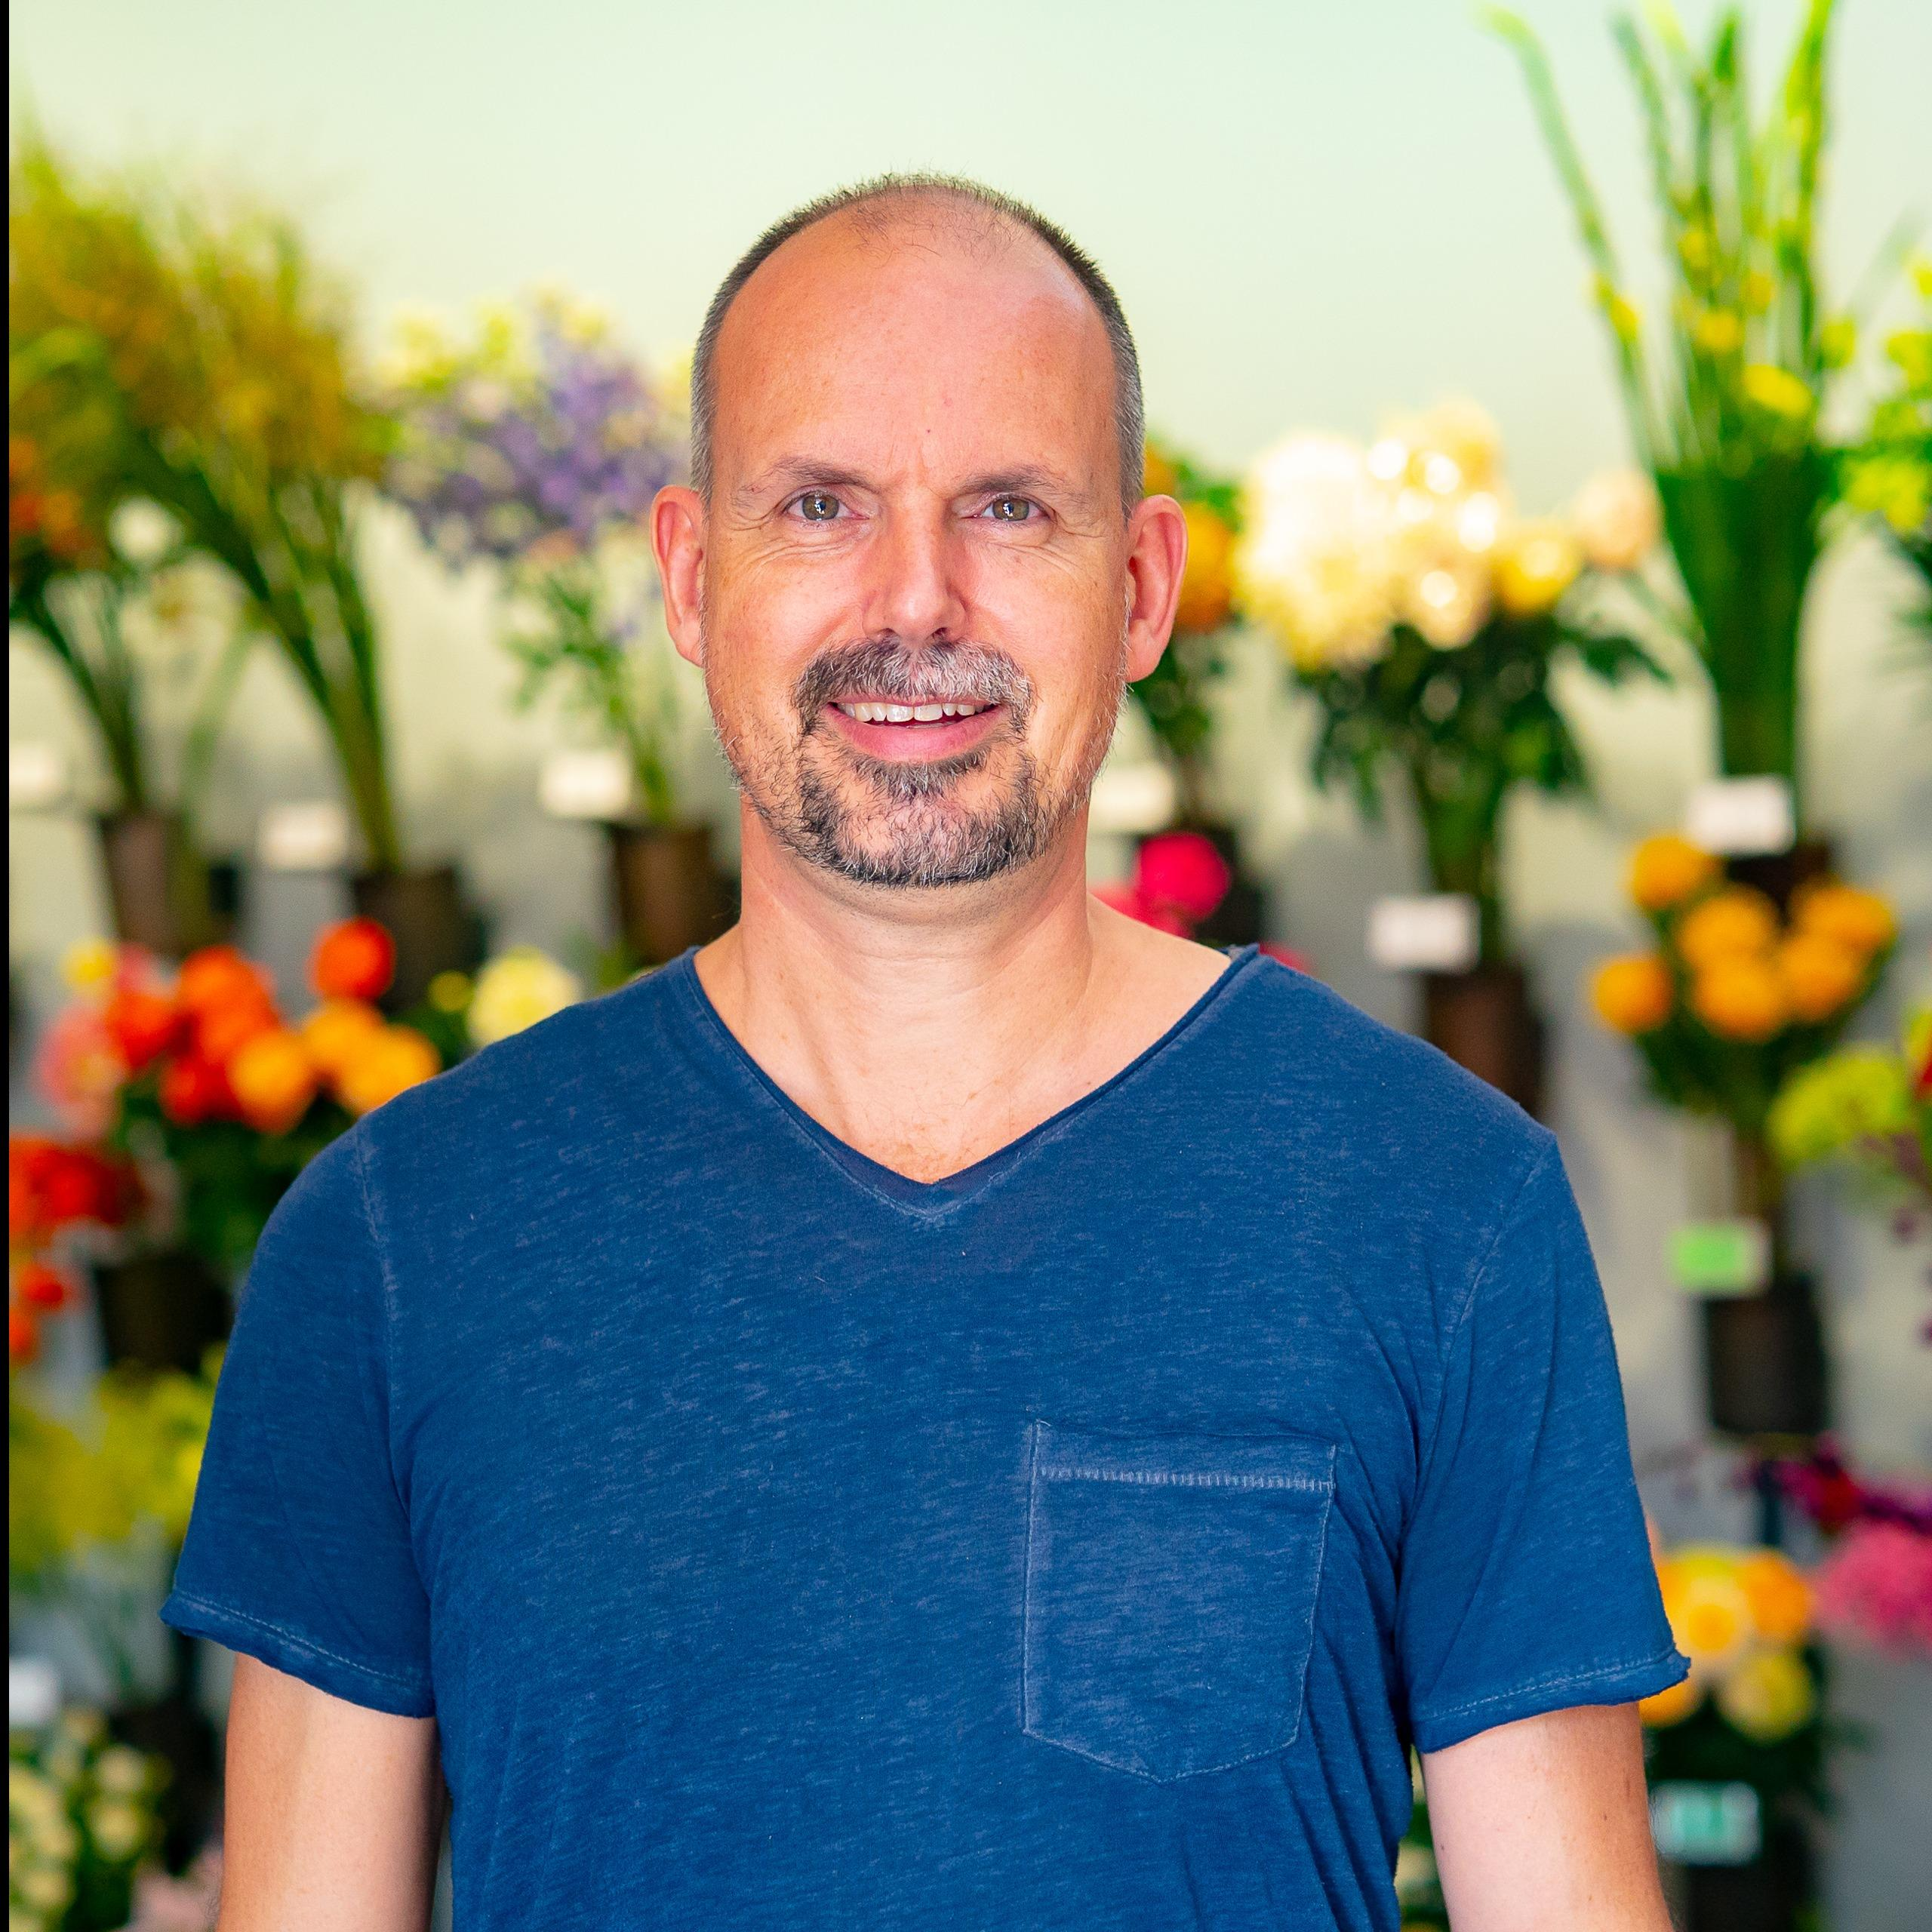 Bram Serre, CEO of URBANBLOOM